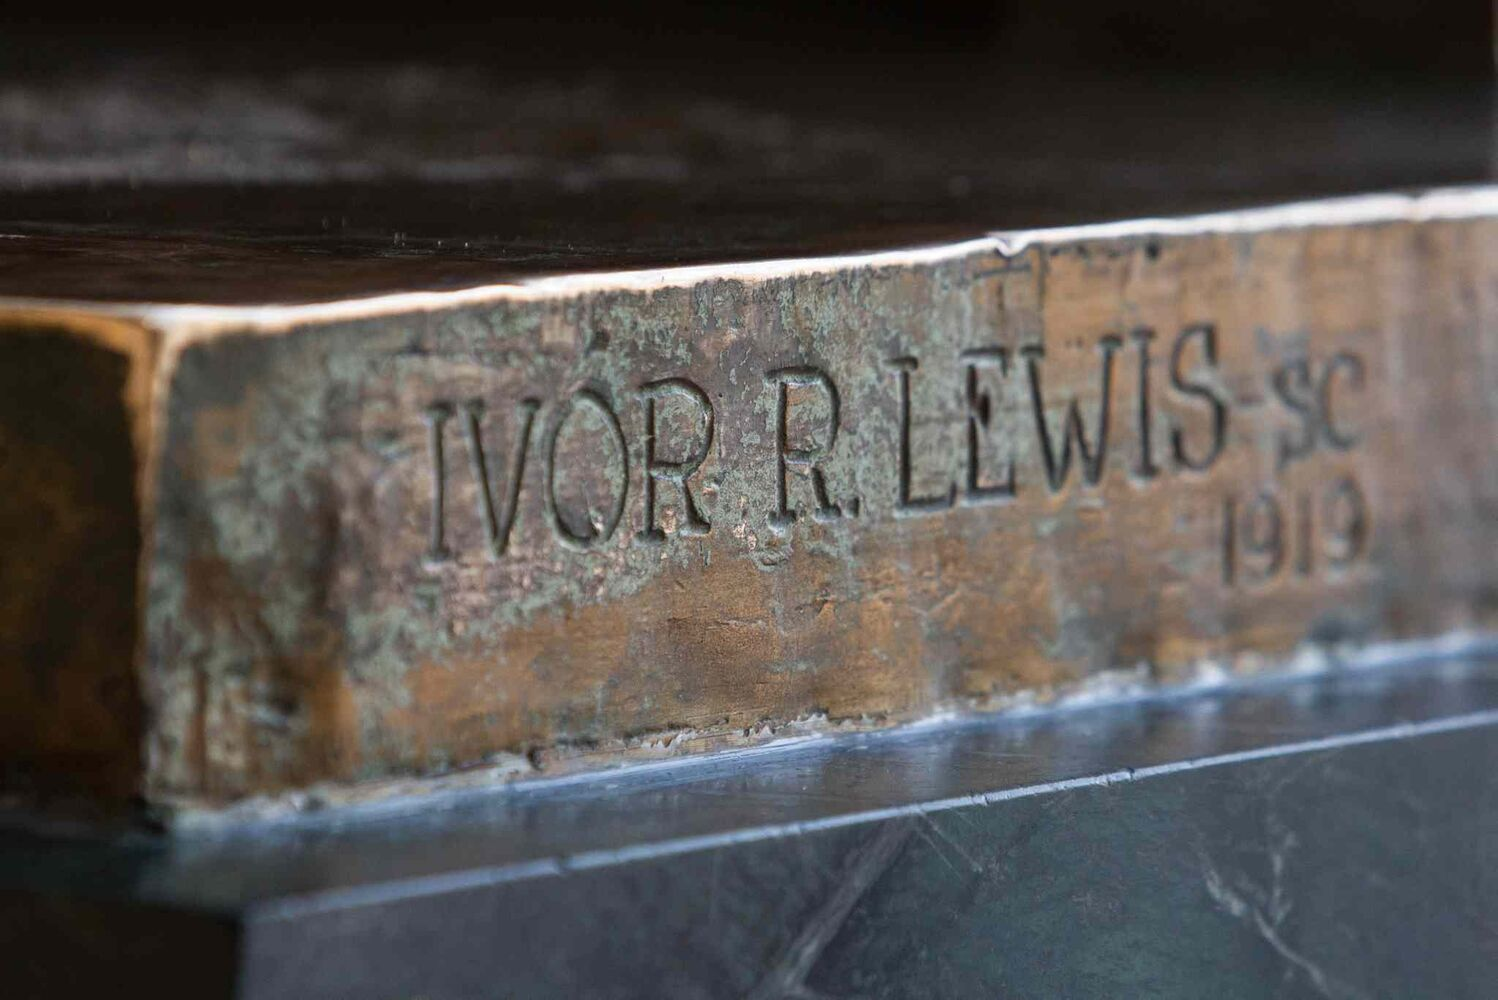 Detail showing the sculptor's name on the Timothy Eaton statue. (MIKE DEAL / WINNIPEG FREE PRESS)